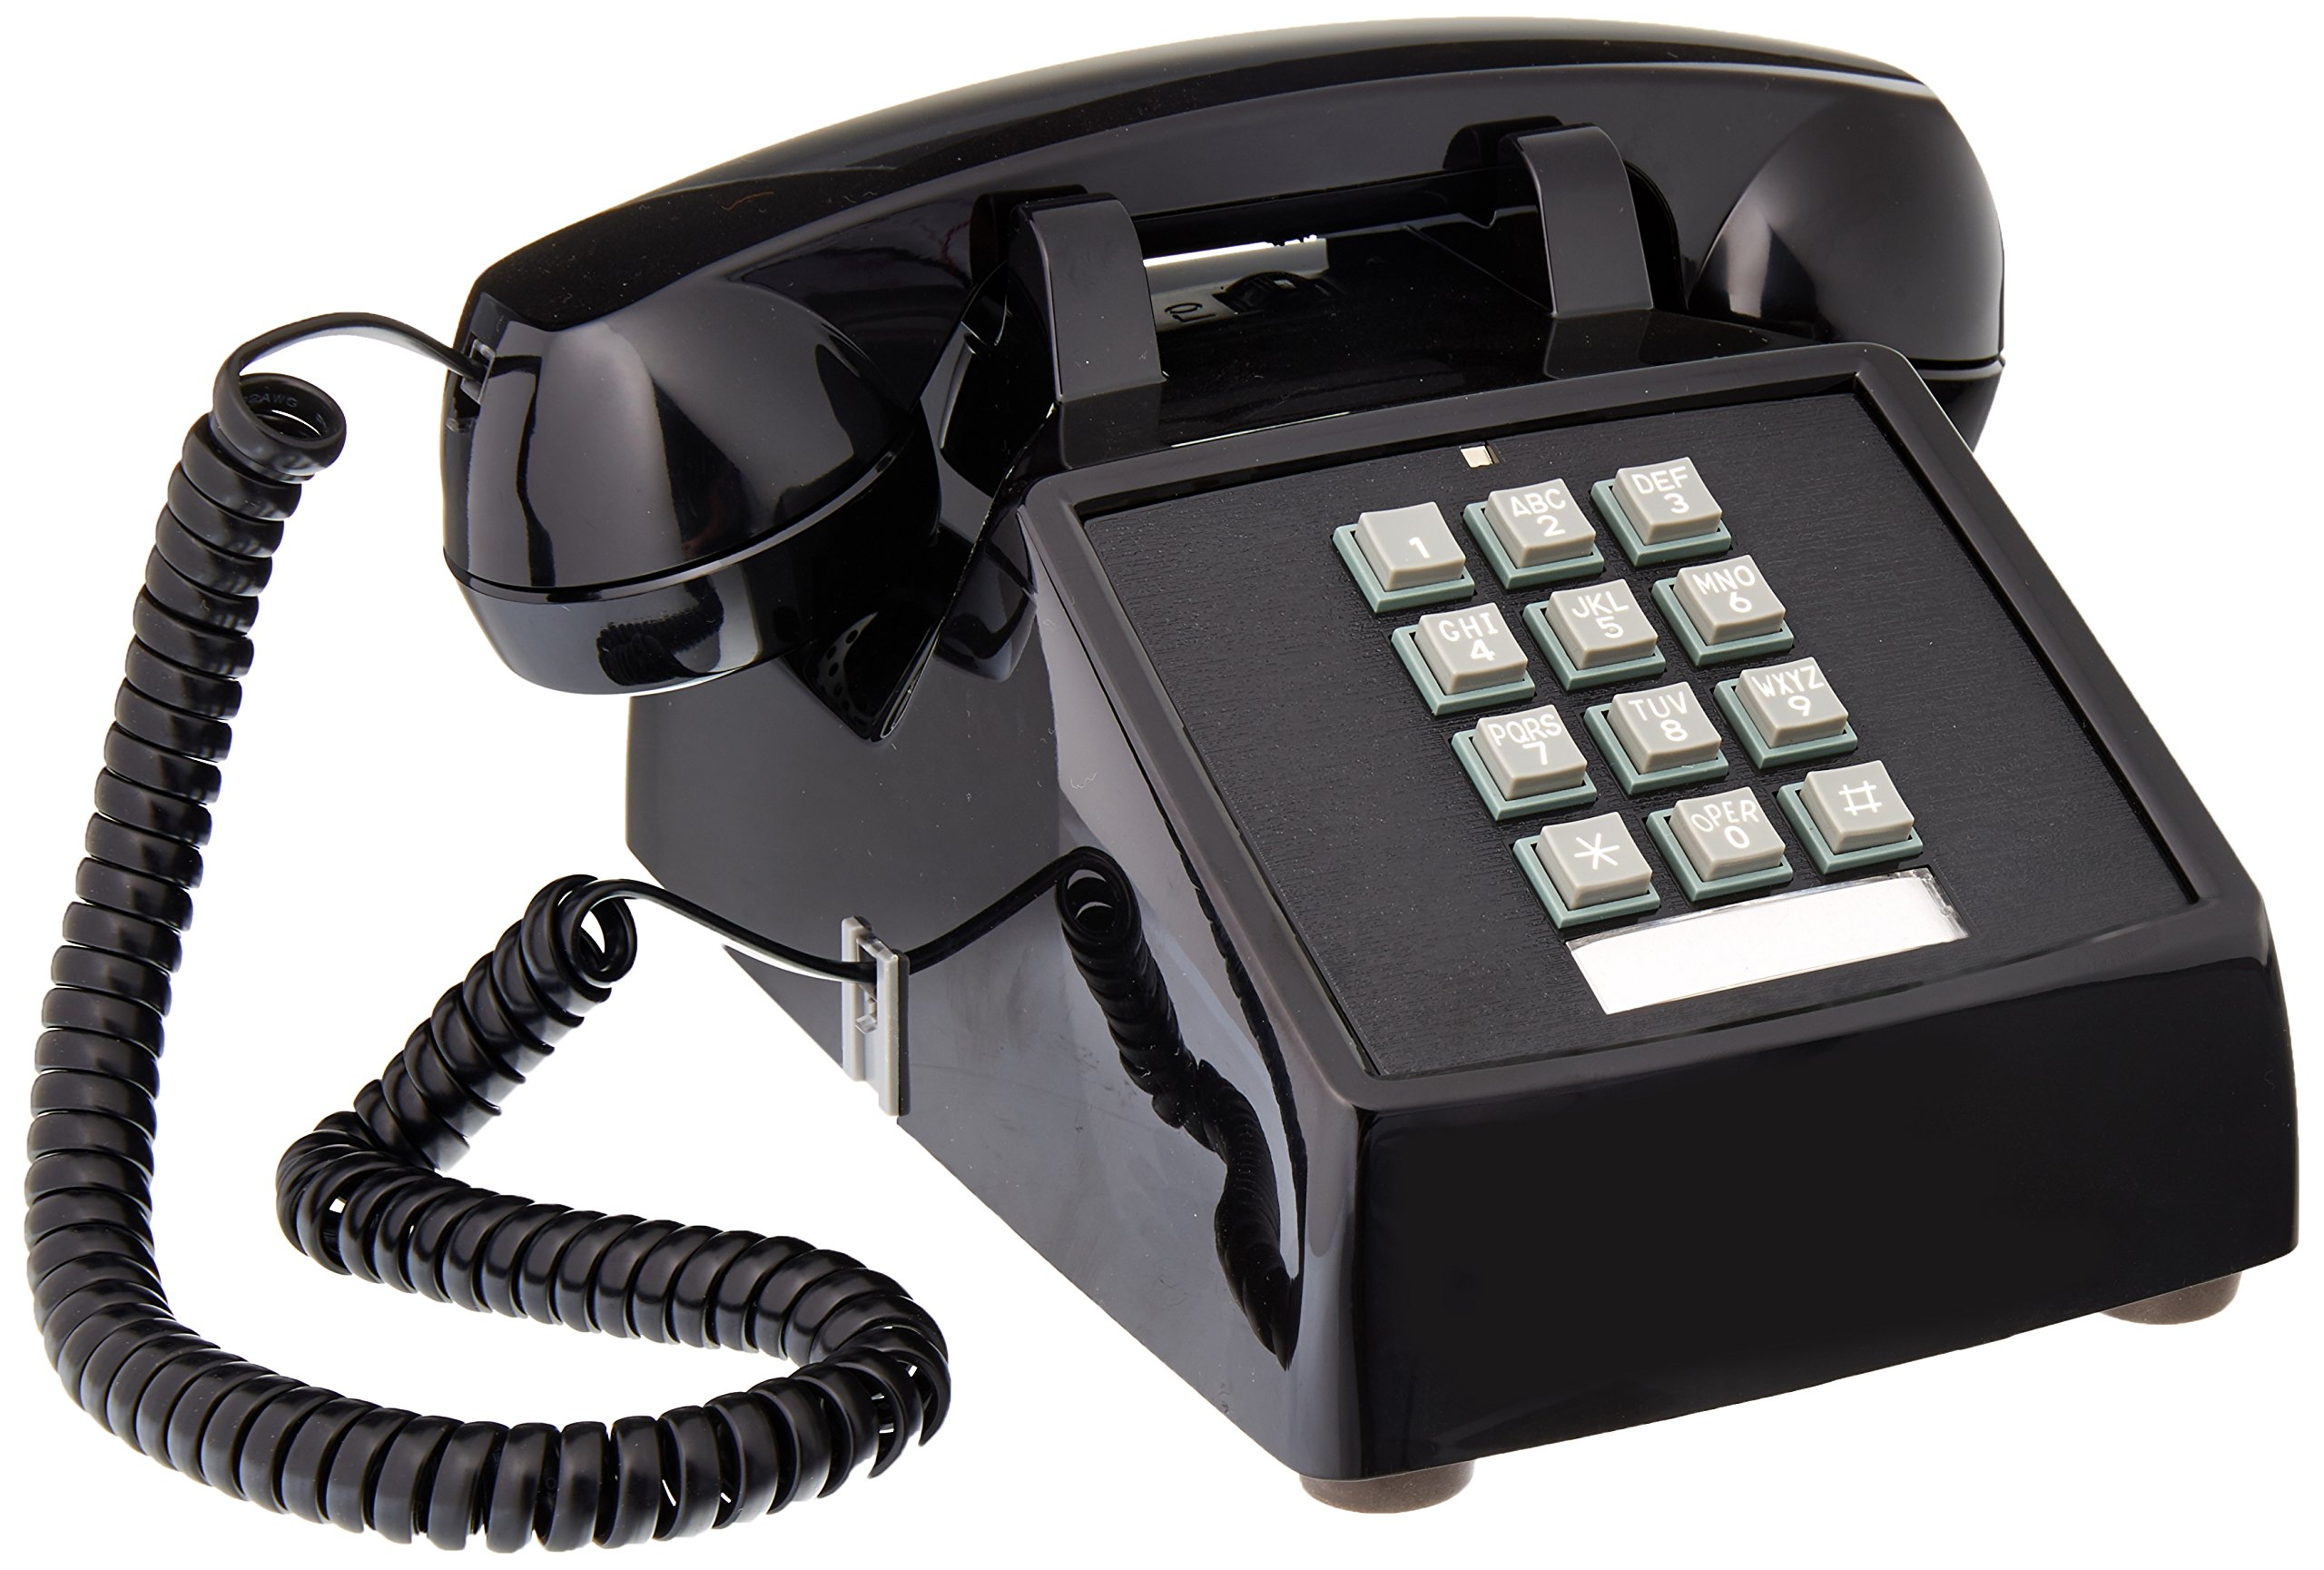 Cortelco Desk Phone, Black (250000-VBA-20M)